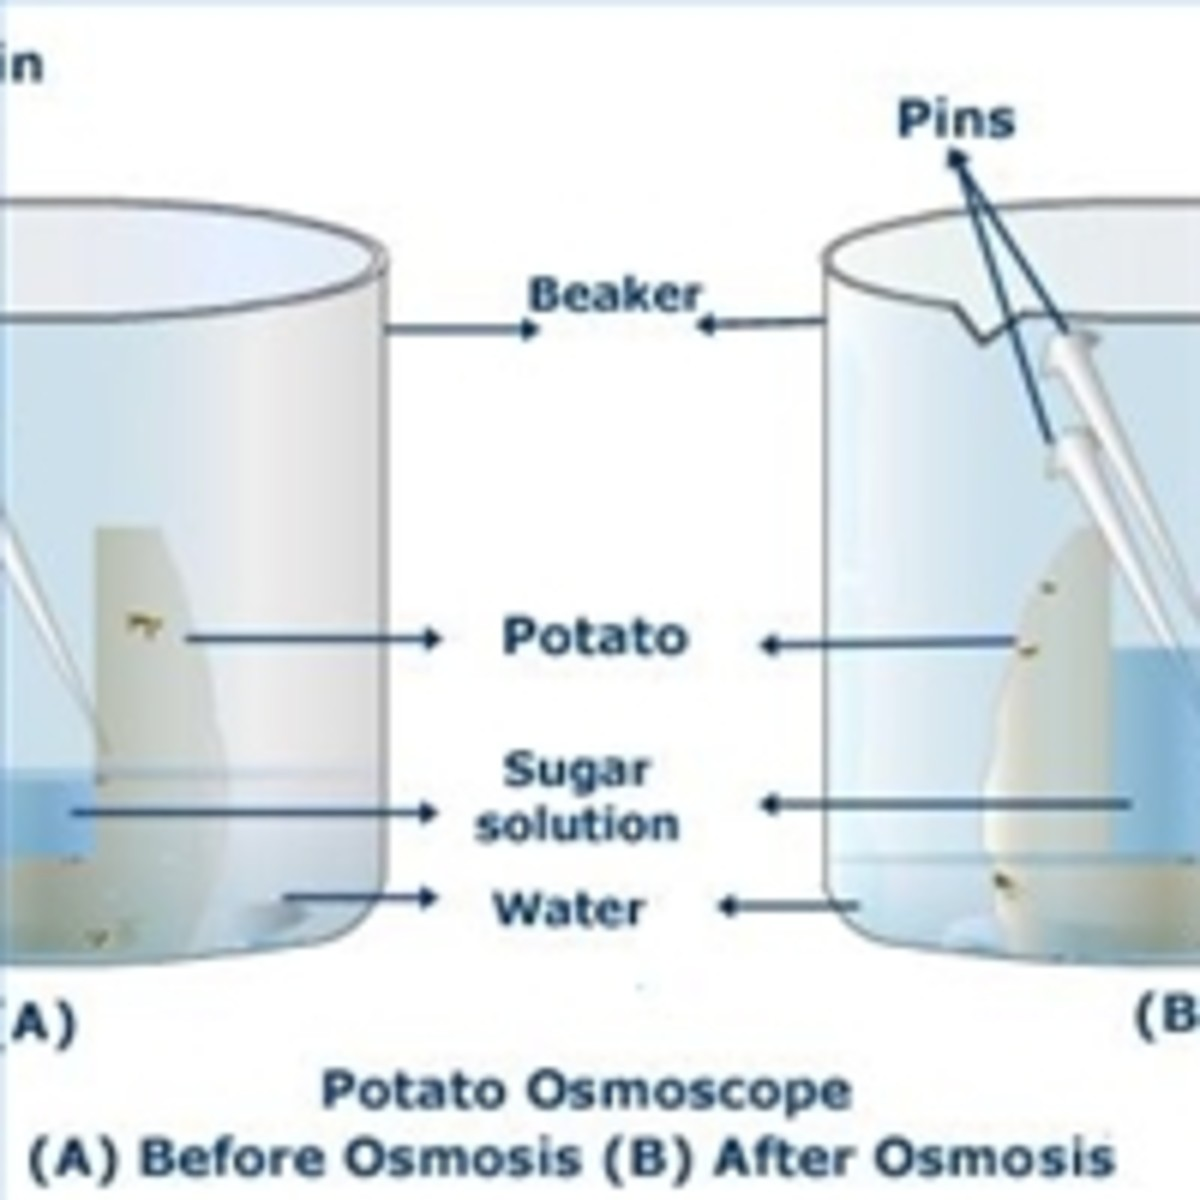 Determination of turgor pressure and study of the process of osmosis